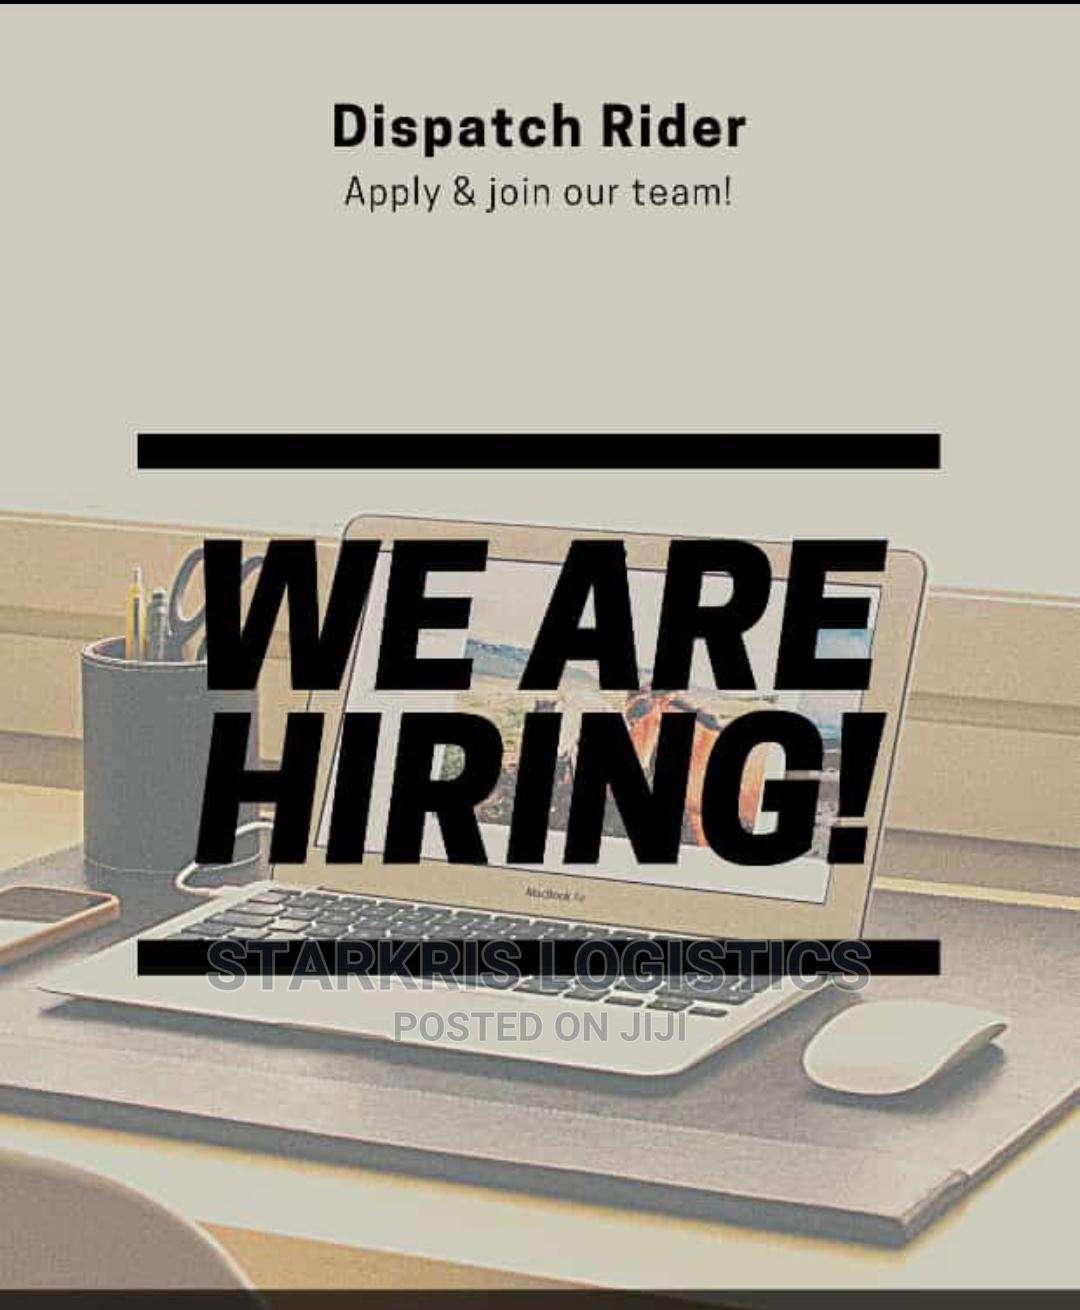 Archive: Dispatch Riders wanted